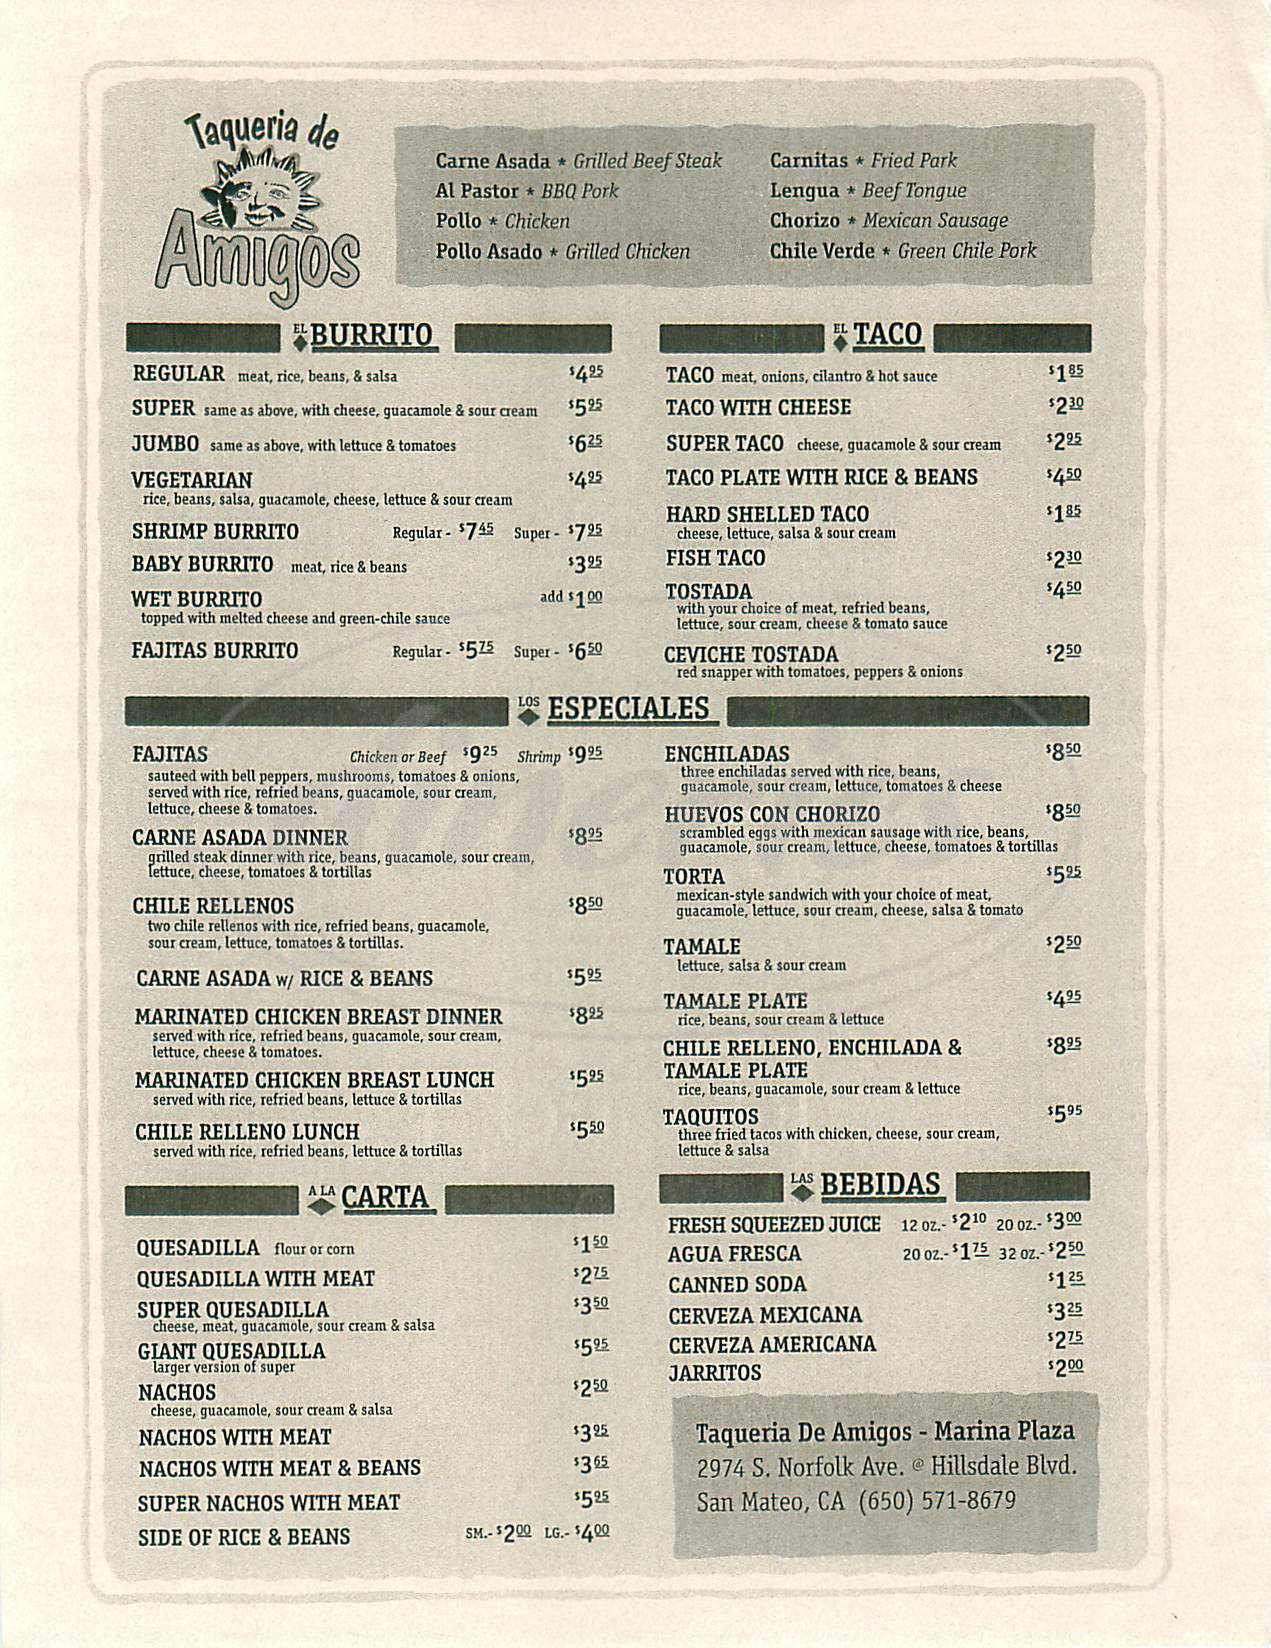 menu for Taqueria de Amigos